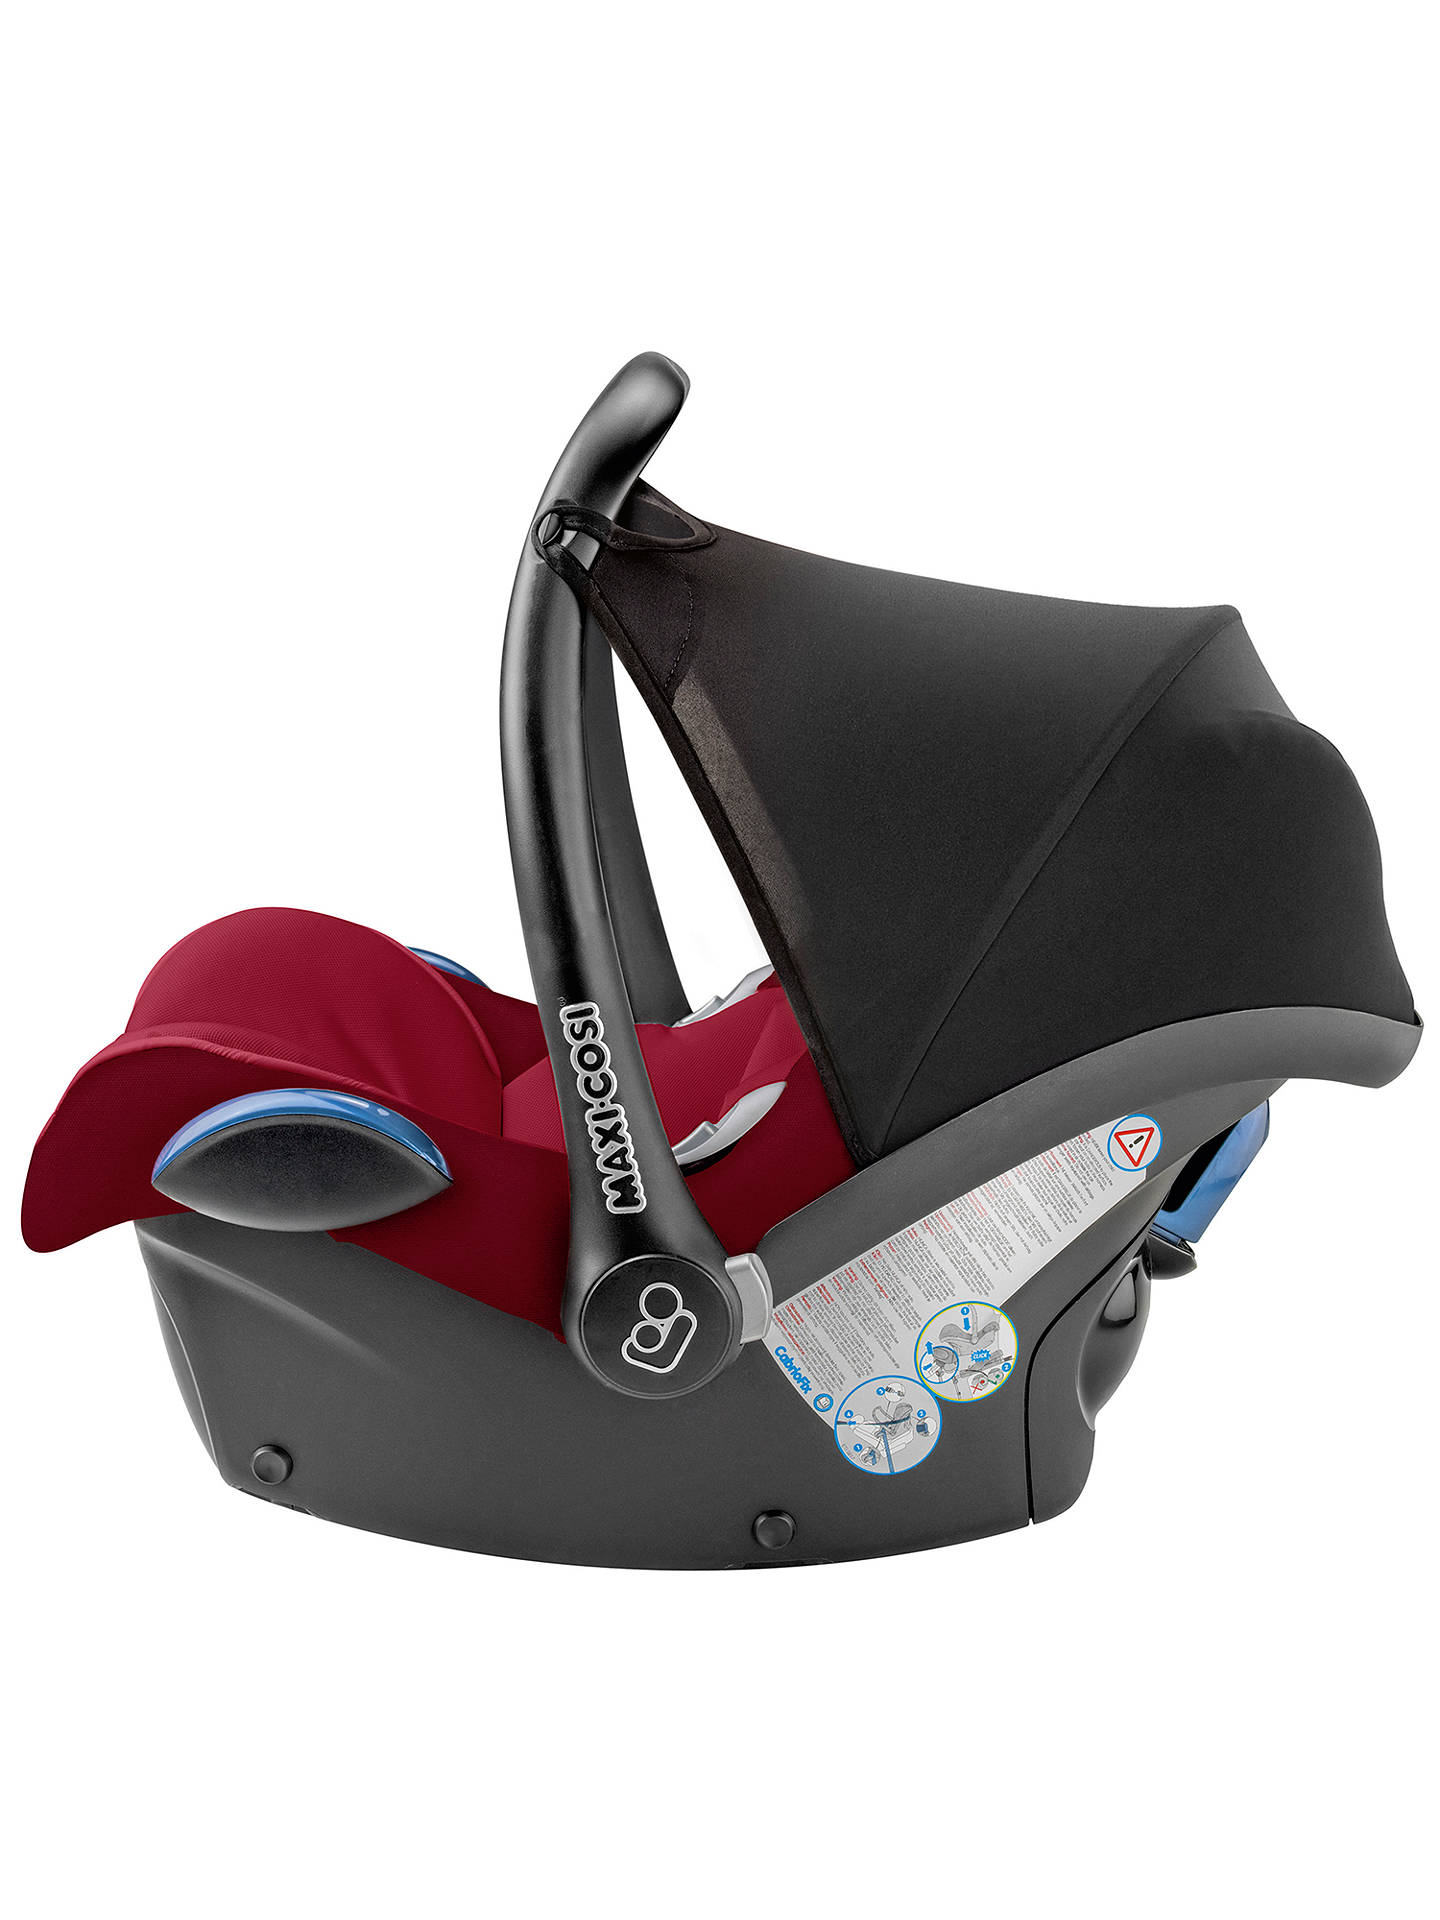 Robin Red Replacement Cover set Maxi-Cosi CabrioFix